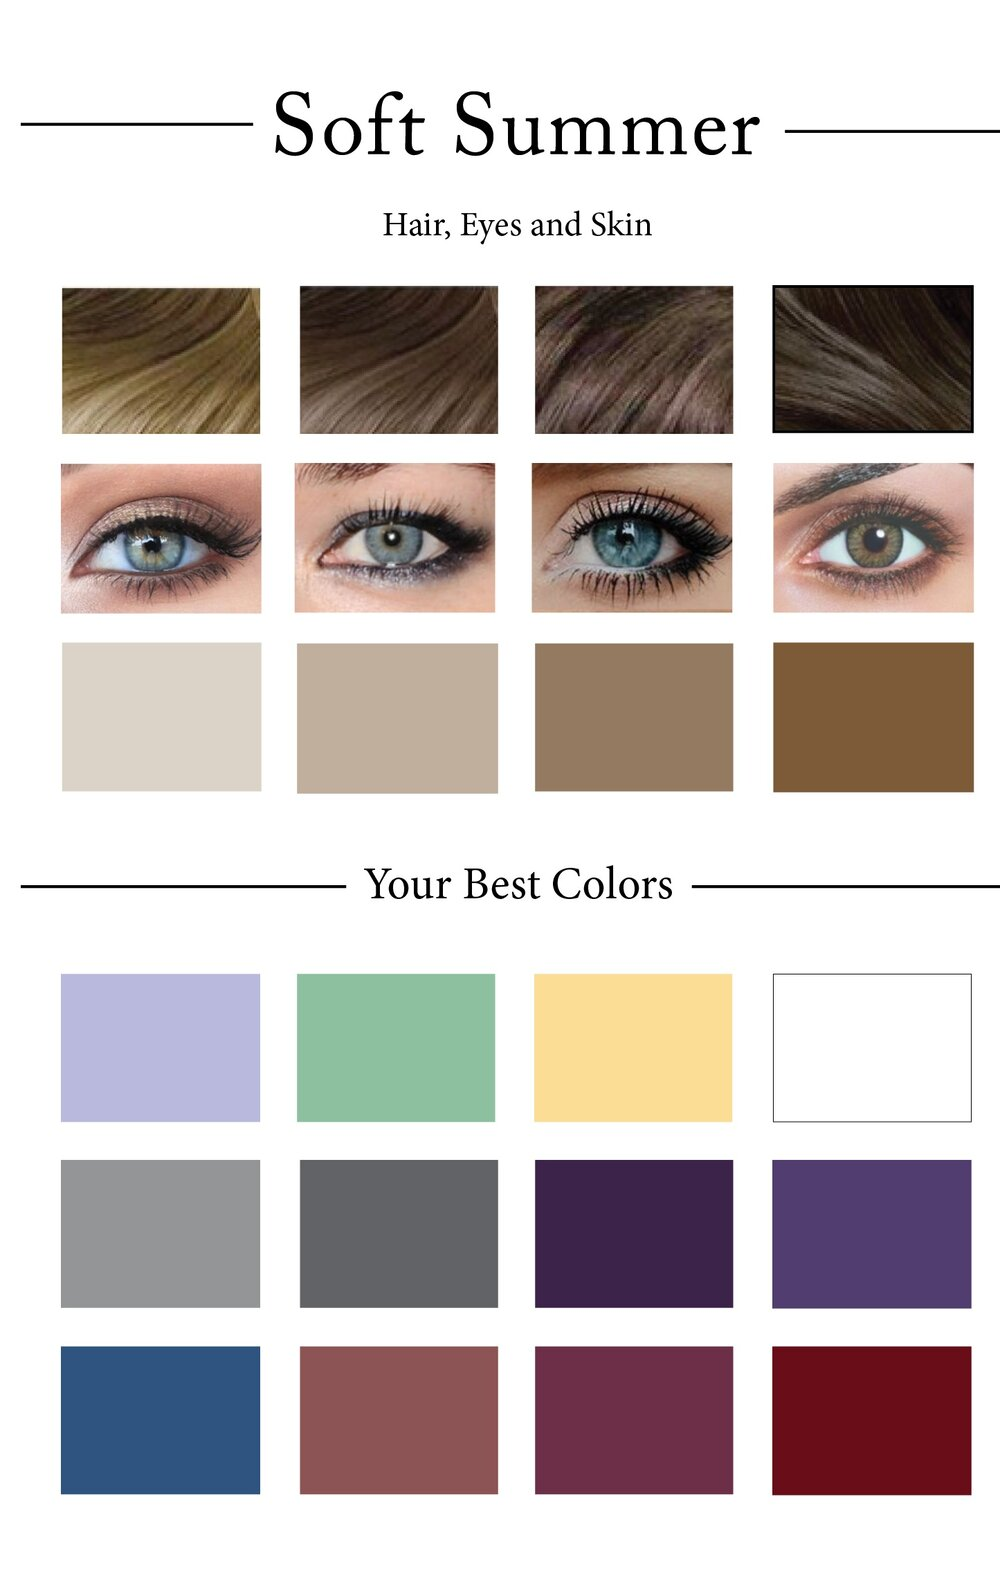 Soft Summer Color Palette - Bing images